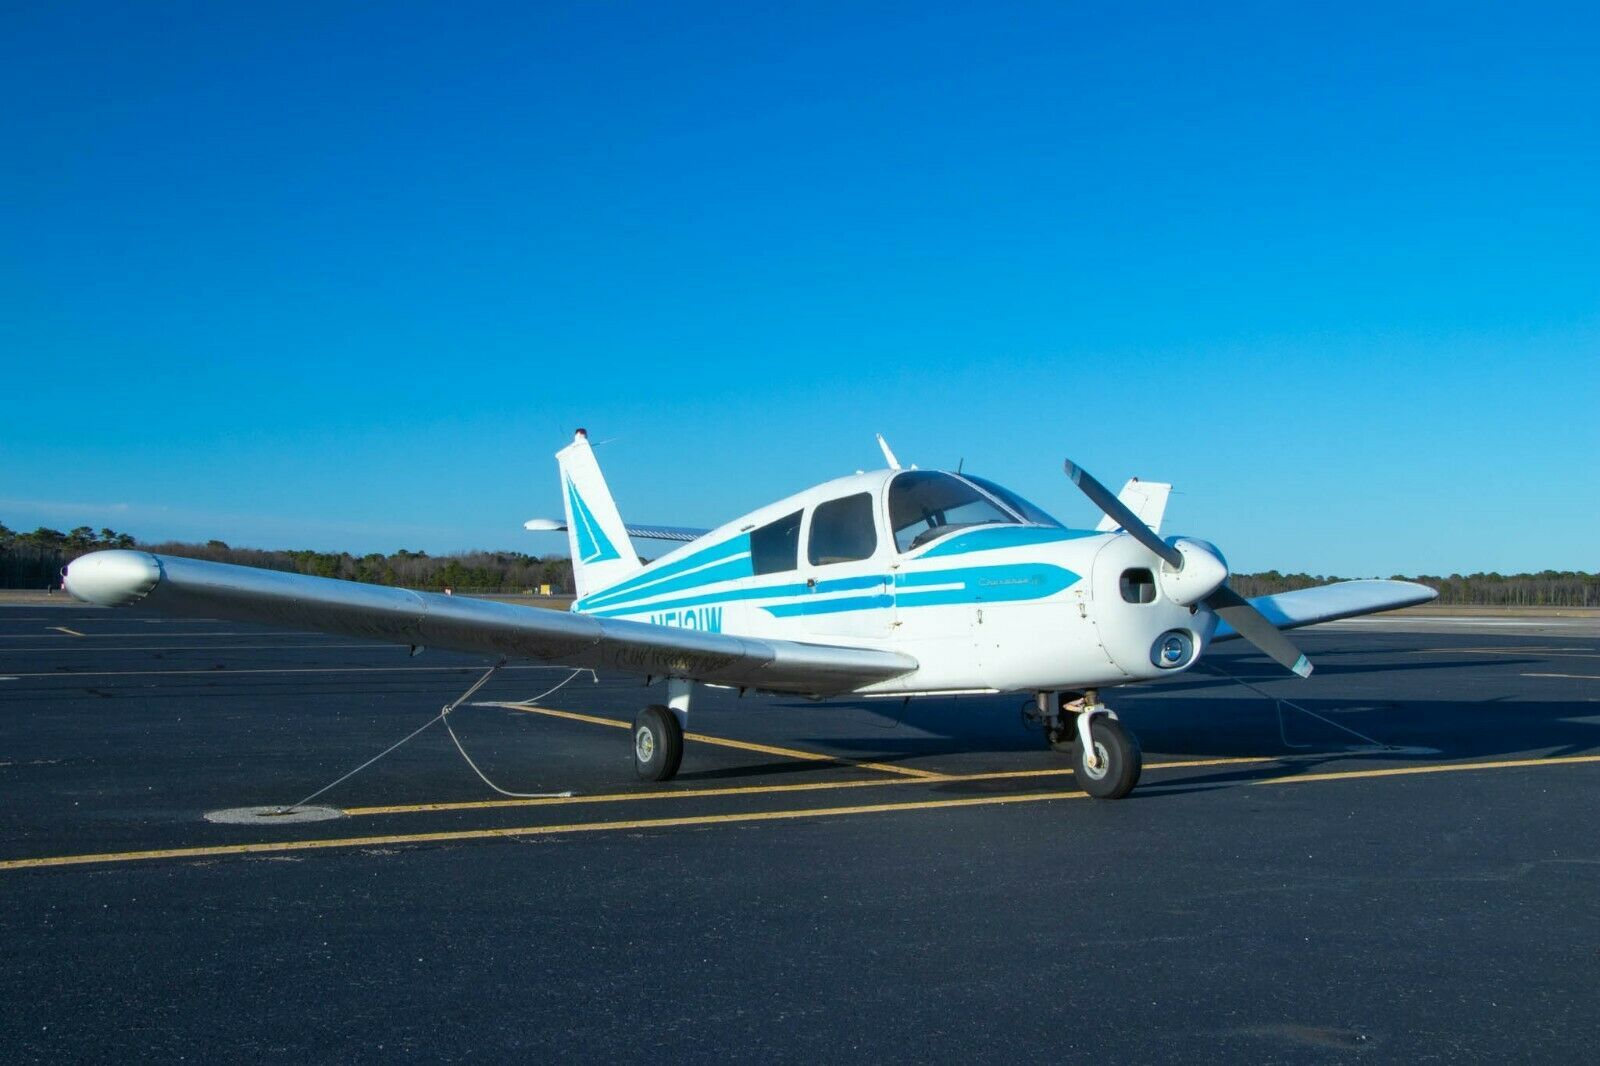 rare 1962 Piper Cherokee aircraft for sale